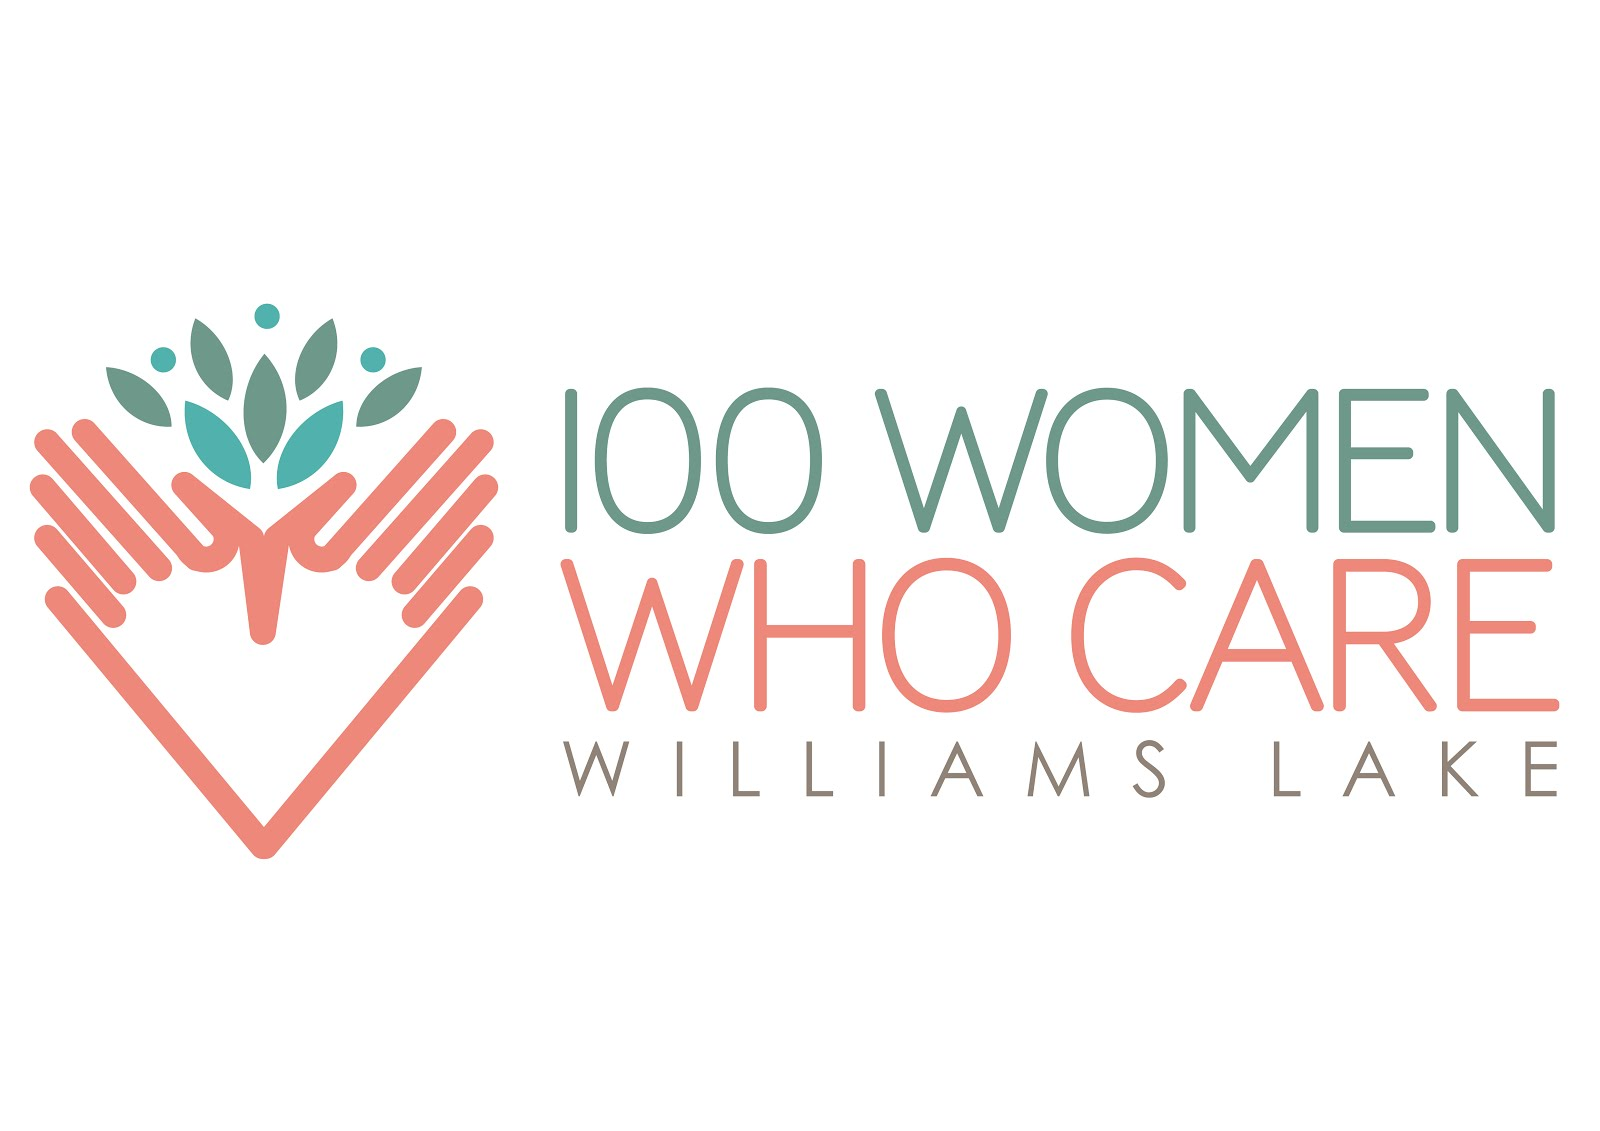 100 Women Who Care Williams Lake